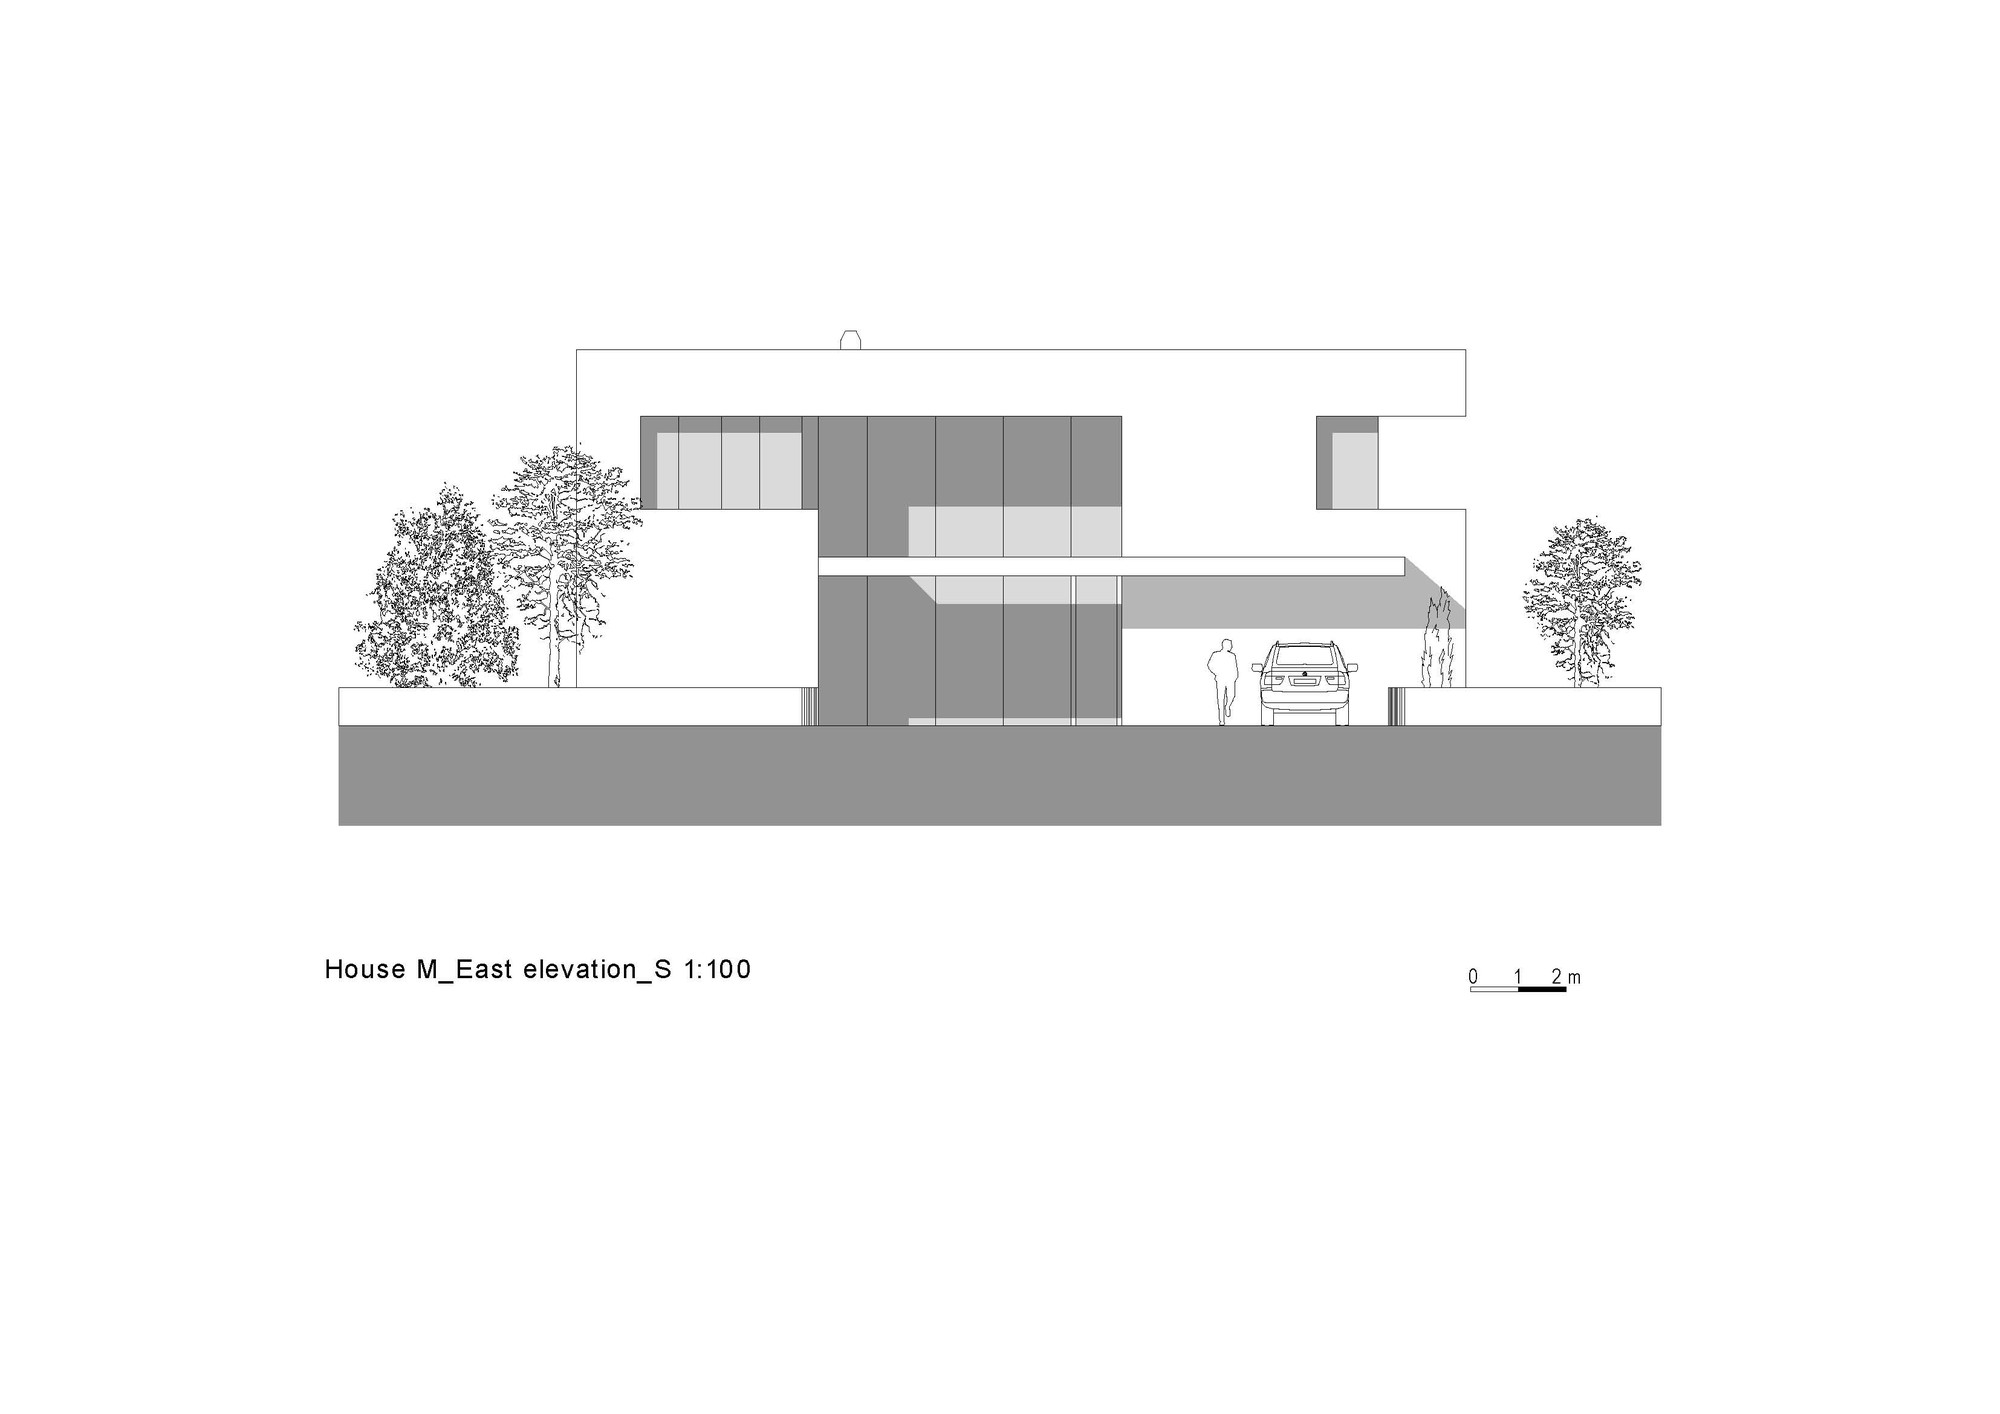 Gallery of house m monovolume architecture design 48 for Architecture house elevation design